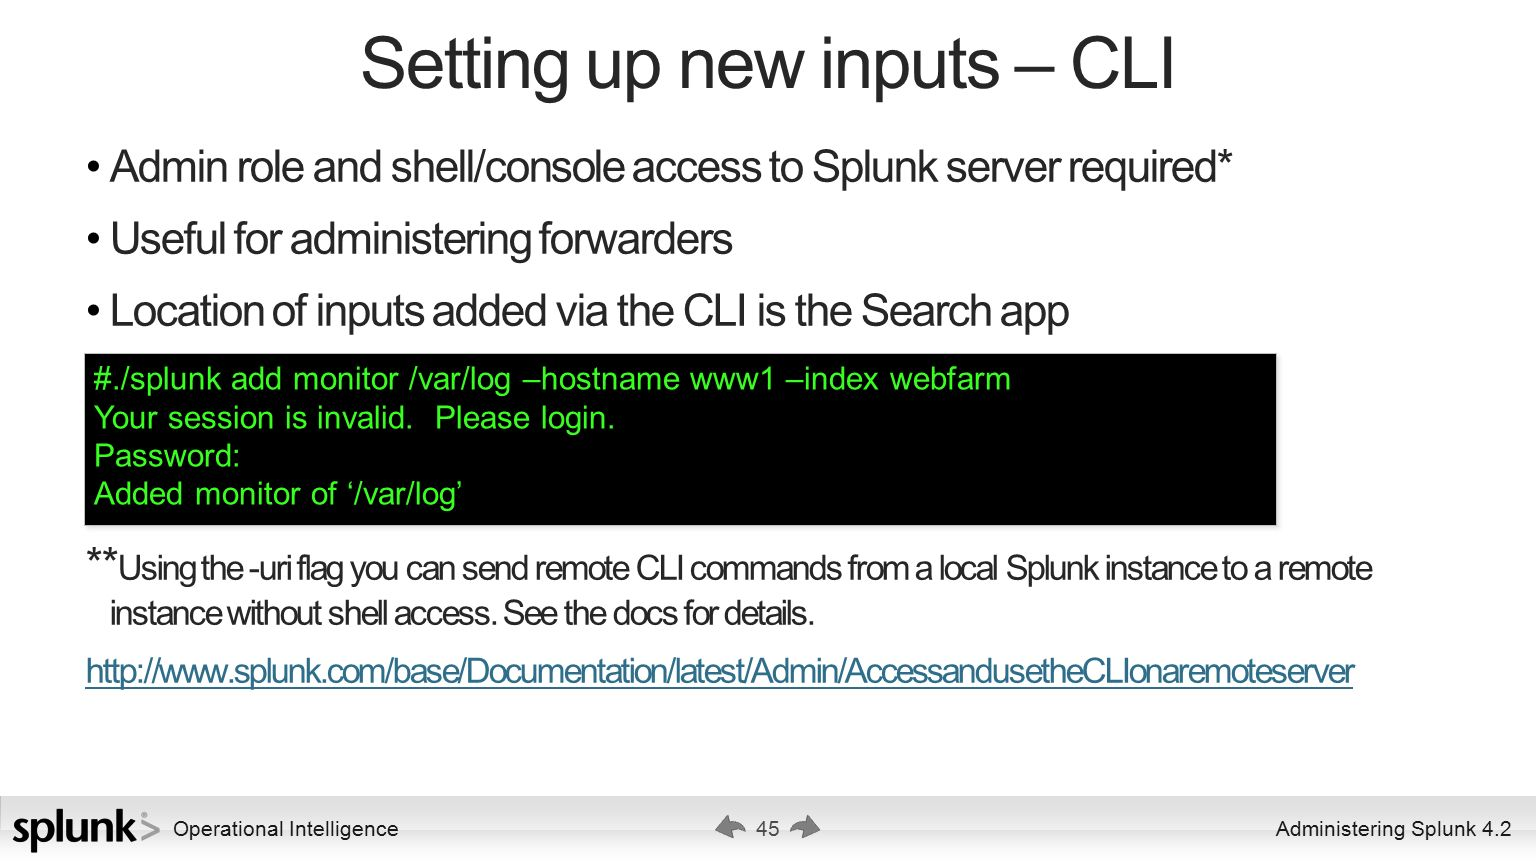 Administering Splunk 4 2 Ver ppt download